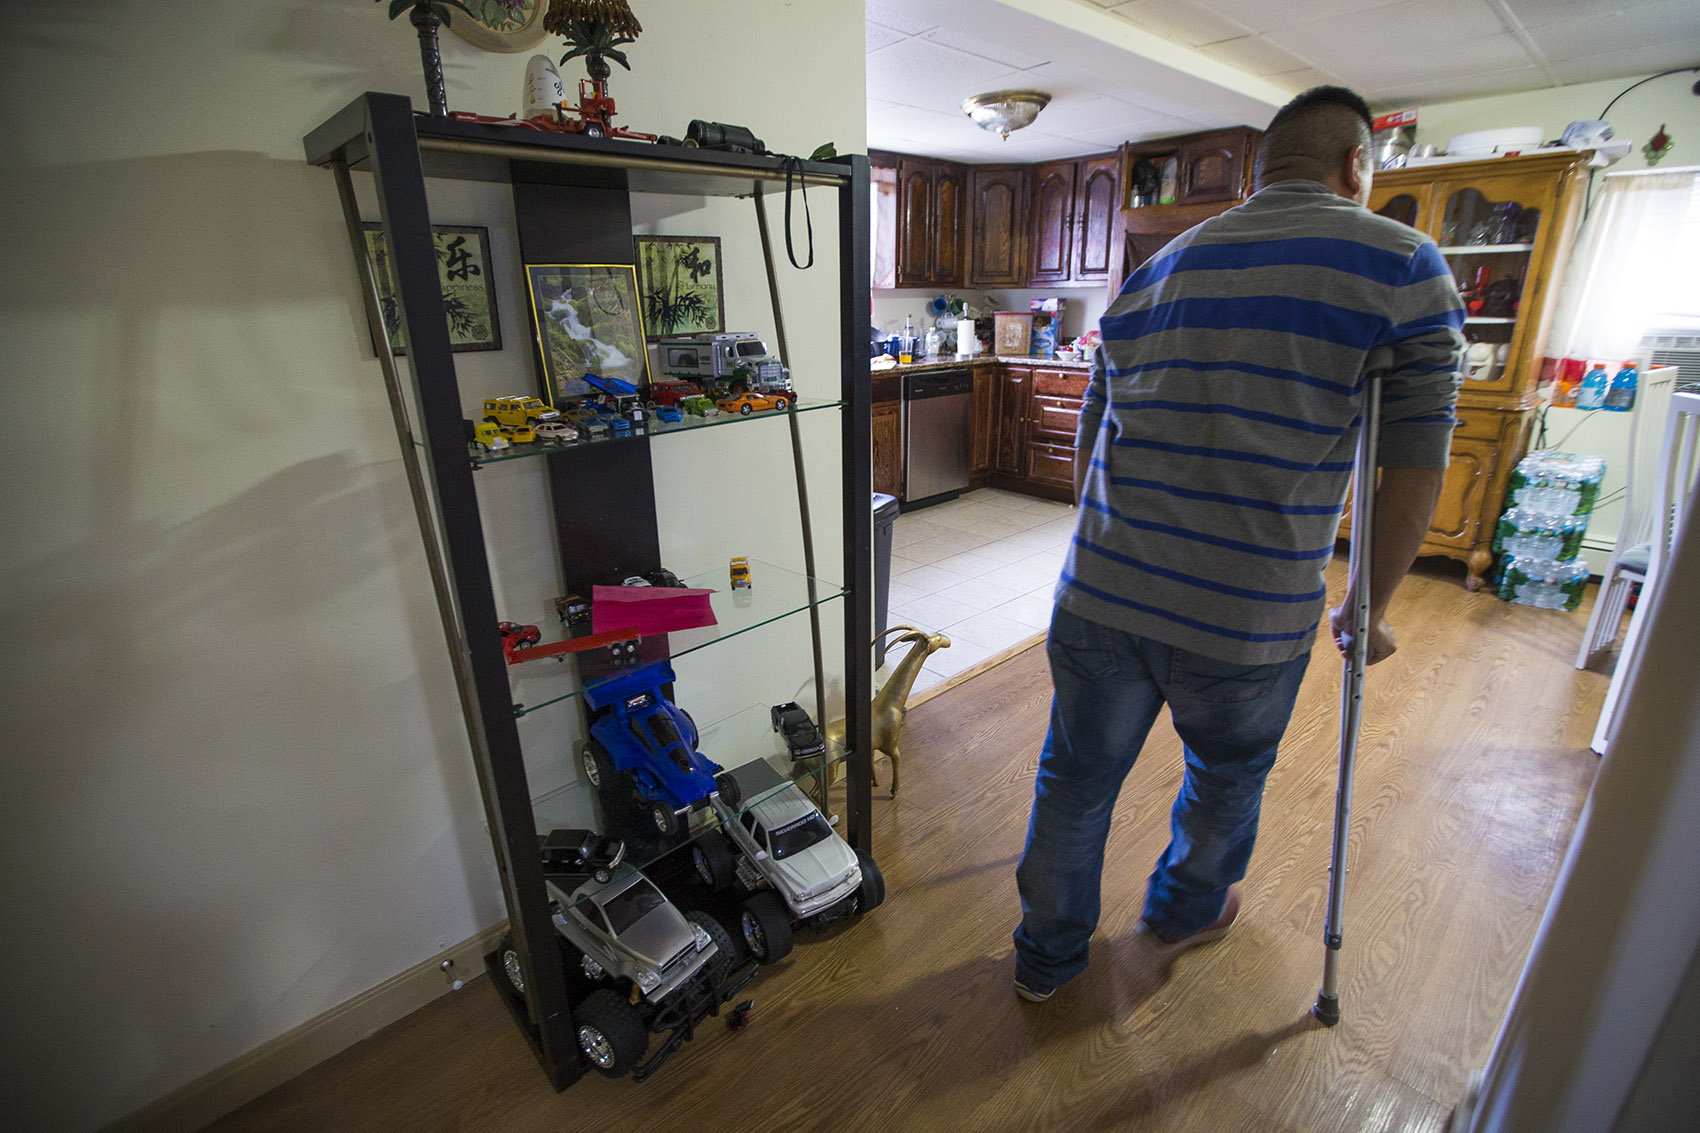 Jose Flores walks through his kitchen on crutches after fracturing his femur bone on a construction site in Boston. (Jesse Costa/WBUR)